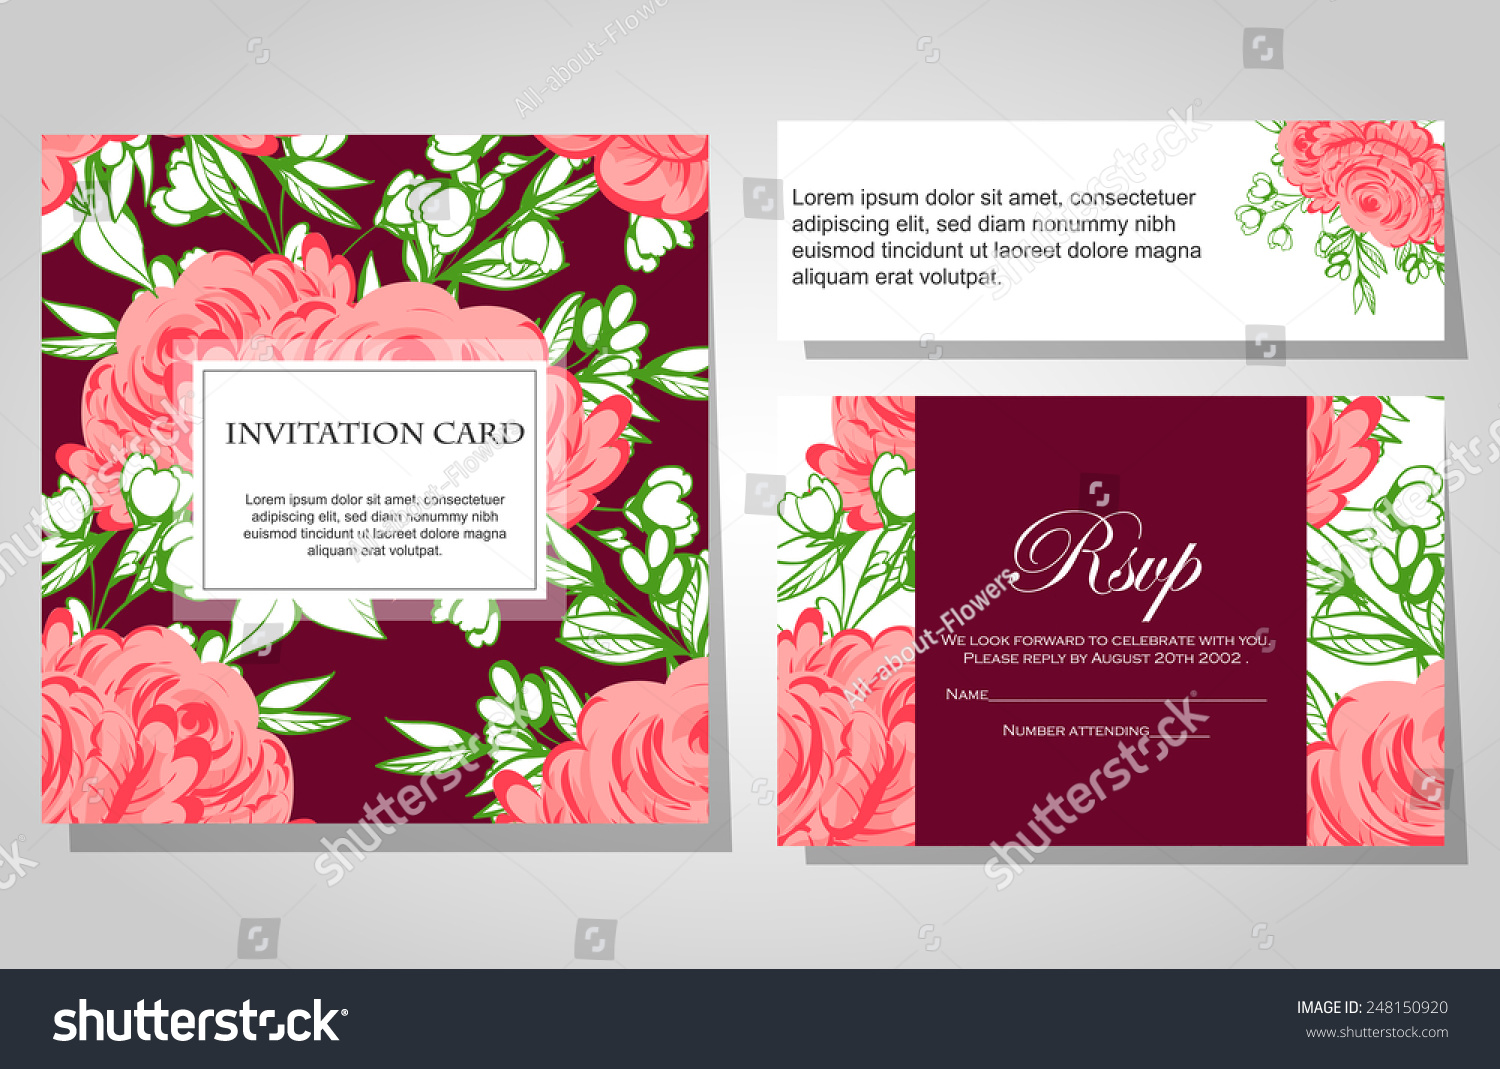 Wedding invitation cards with floral elements | EZ Canvas